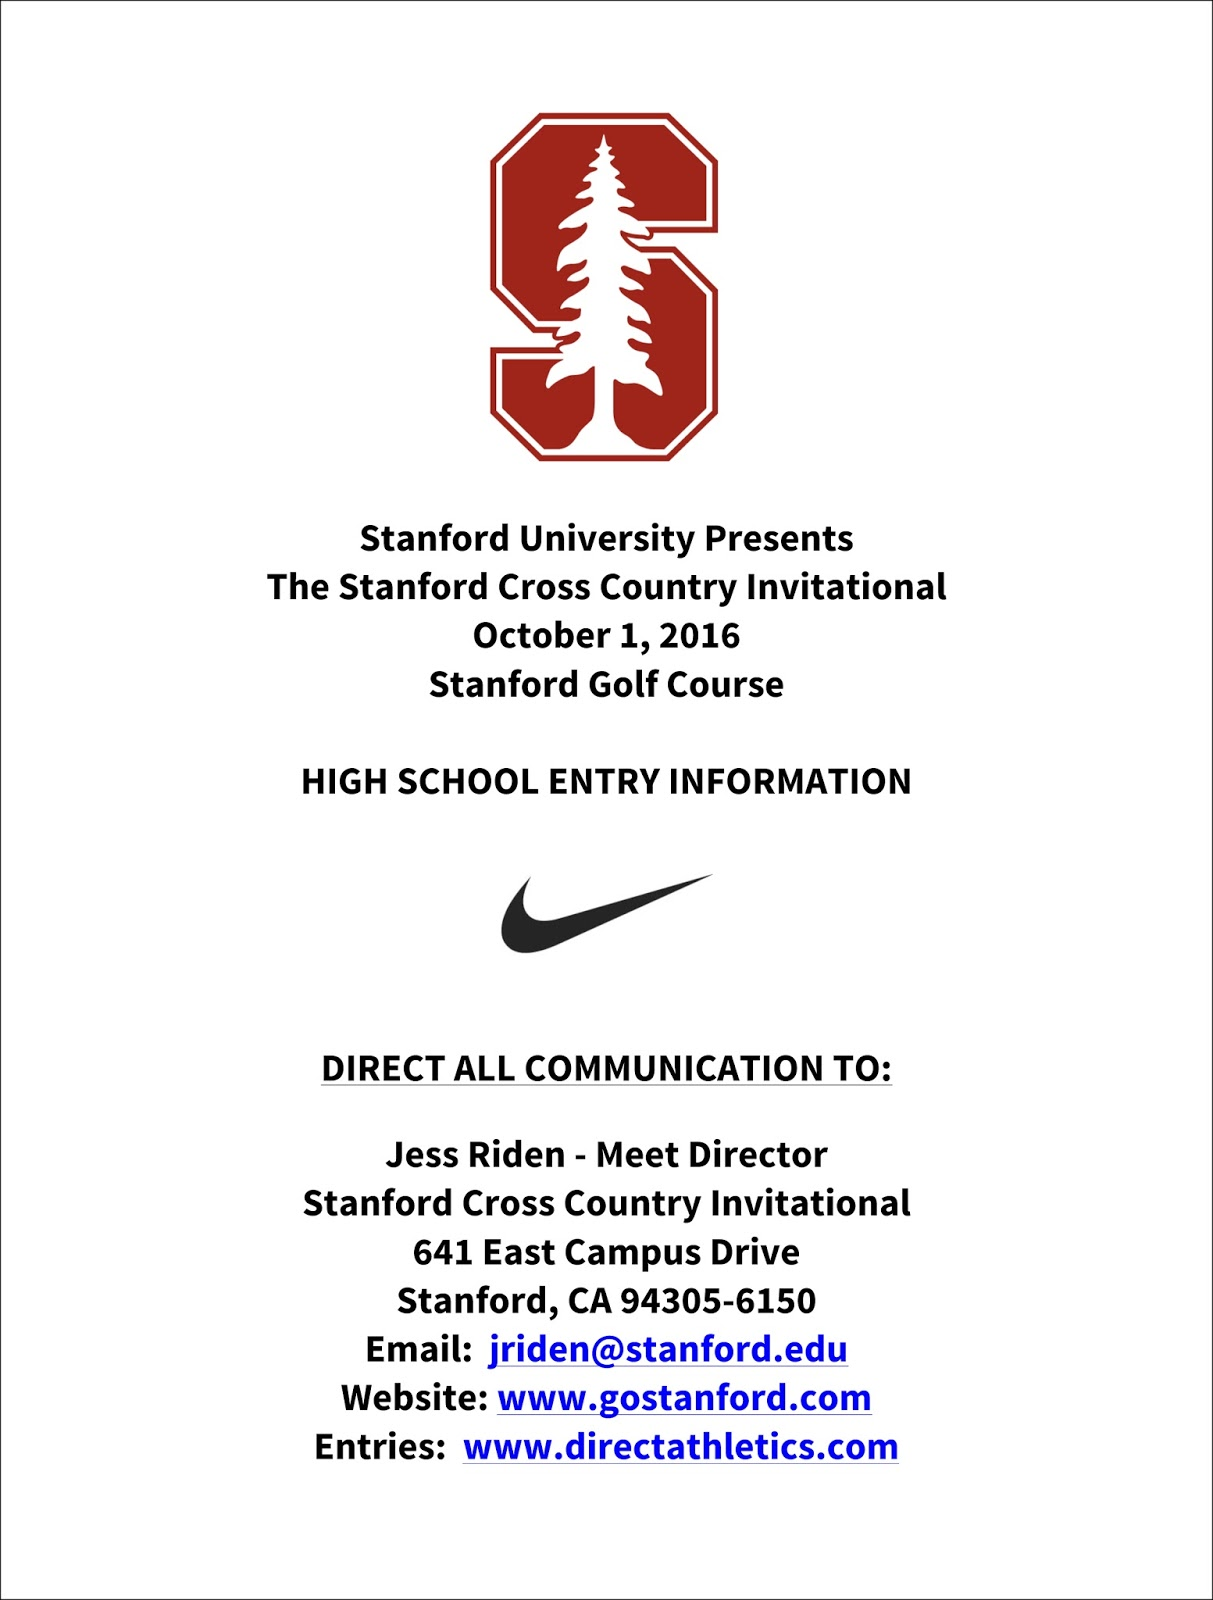 Cross Country Express 2016 Stanford Cross Country Invitational Meet